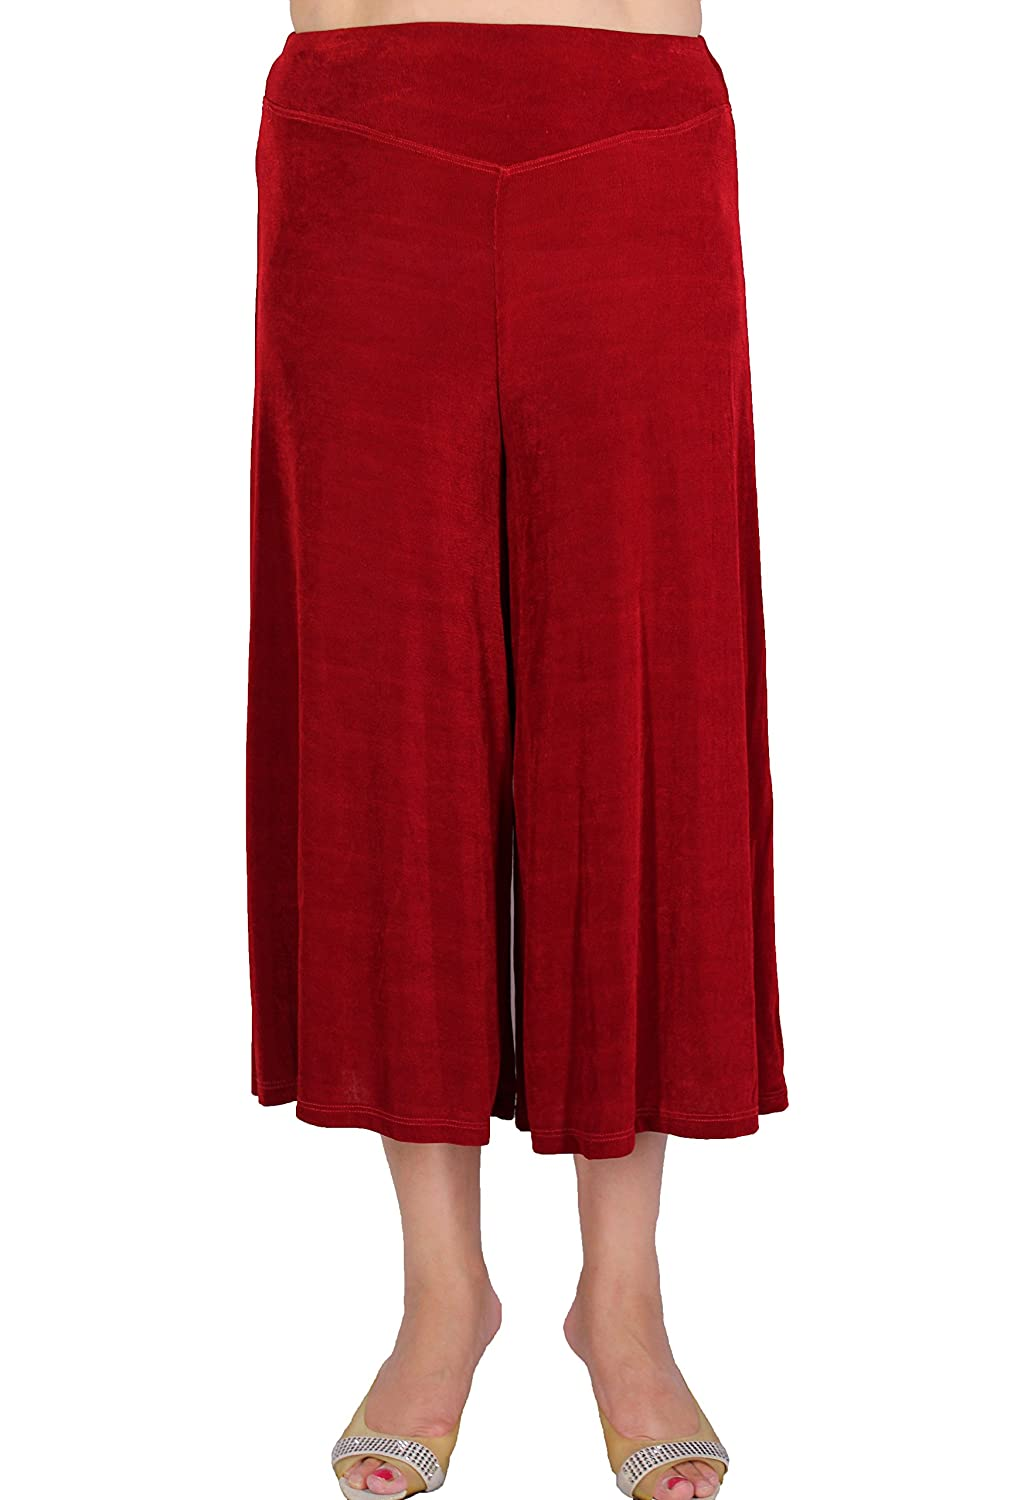 Calison Women's Slinky High Waist Stretch Guacho Pants Made in USA Red